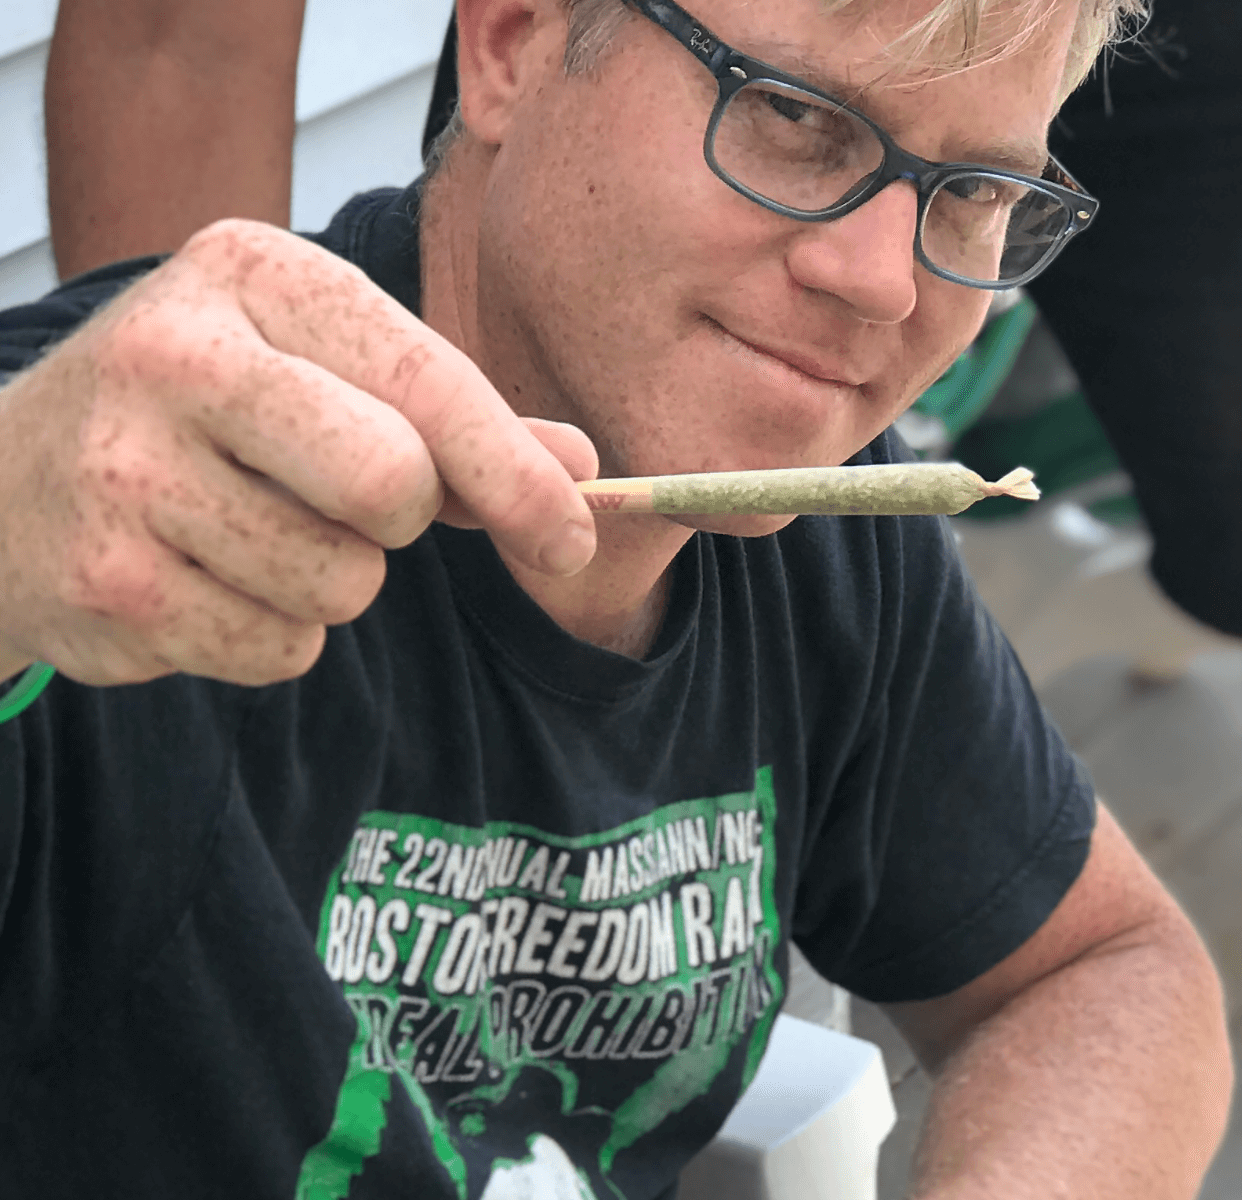 Canna provisions COO erik williams norml will and way lee chamber of commerce